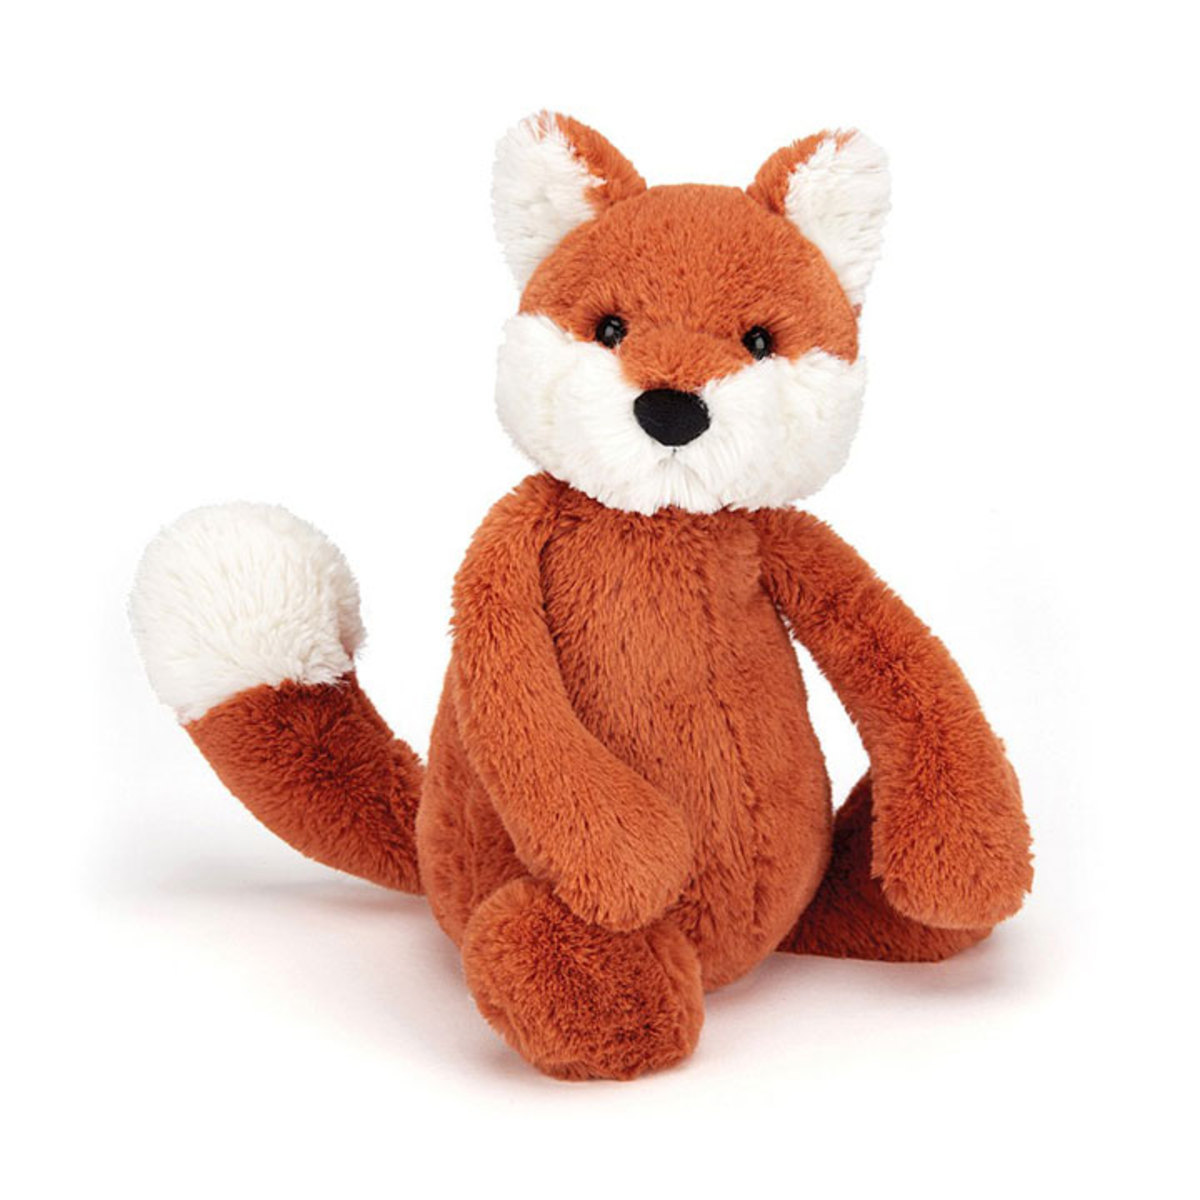 Peluche Bashful Fox Cub - Medium Bashful Fox Cub - Medium